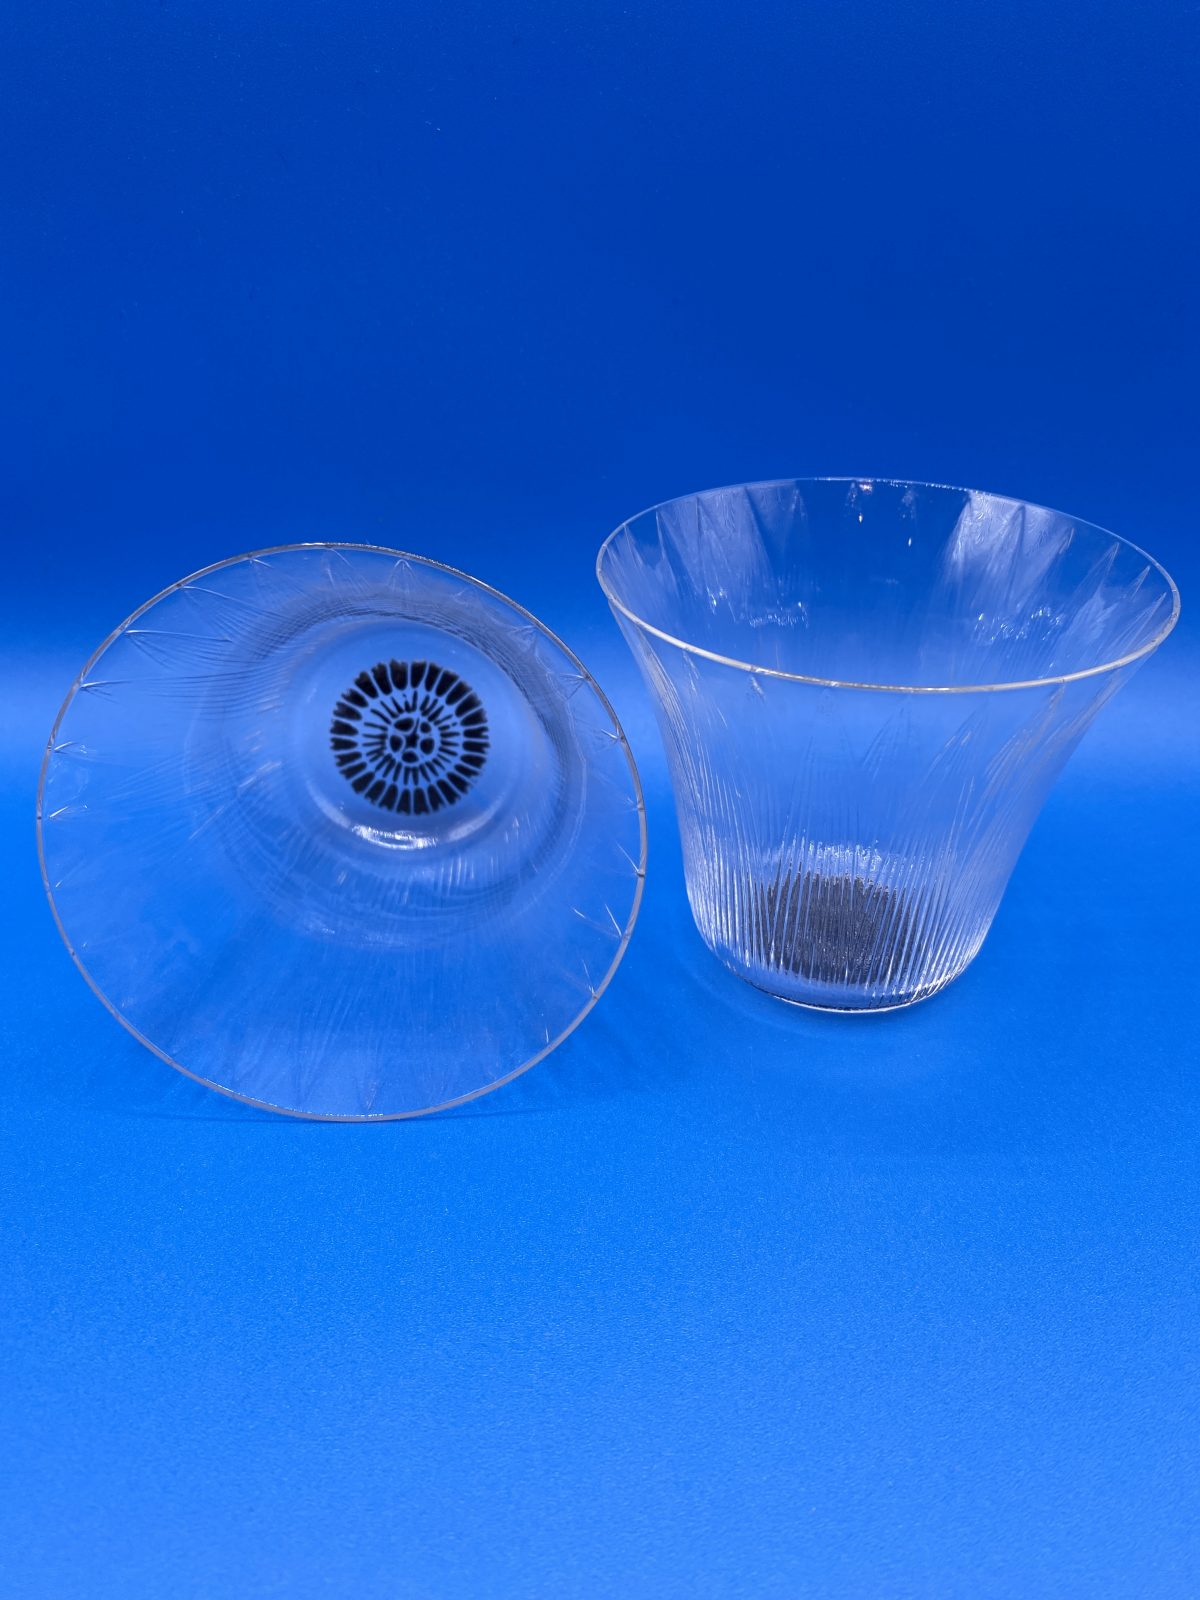 G1 - A Magnificent and Rare Set of 6 Rene lalique Lotus Pattern Tumblers with black enamel decoration, c.1922, not made after 1947. Marcilhac page 769, no.3406. All in perfect condition & fully signed to base.  £695